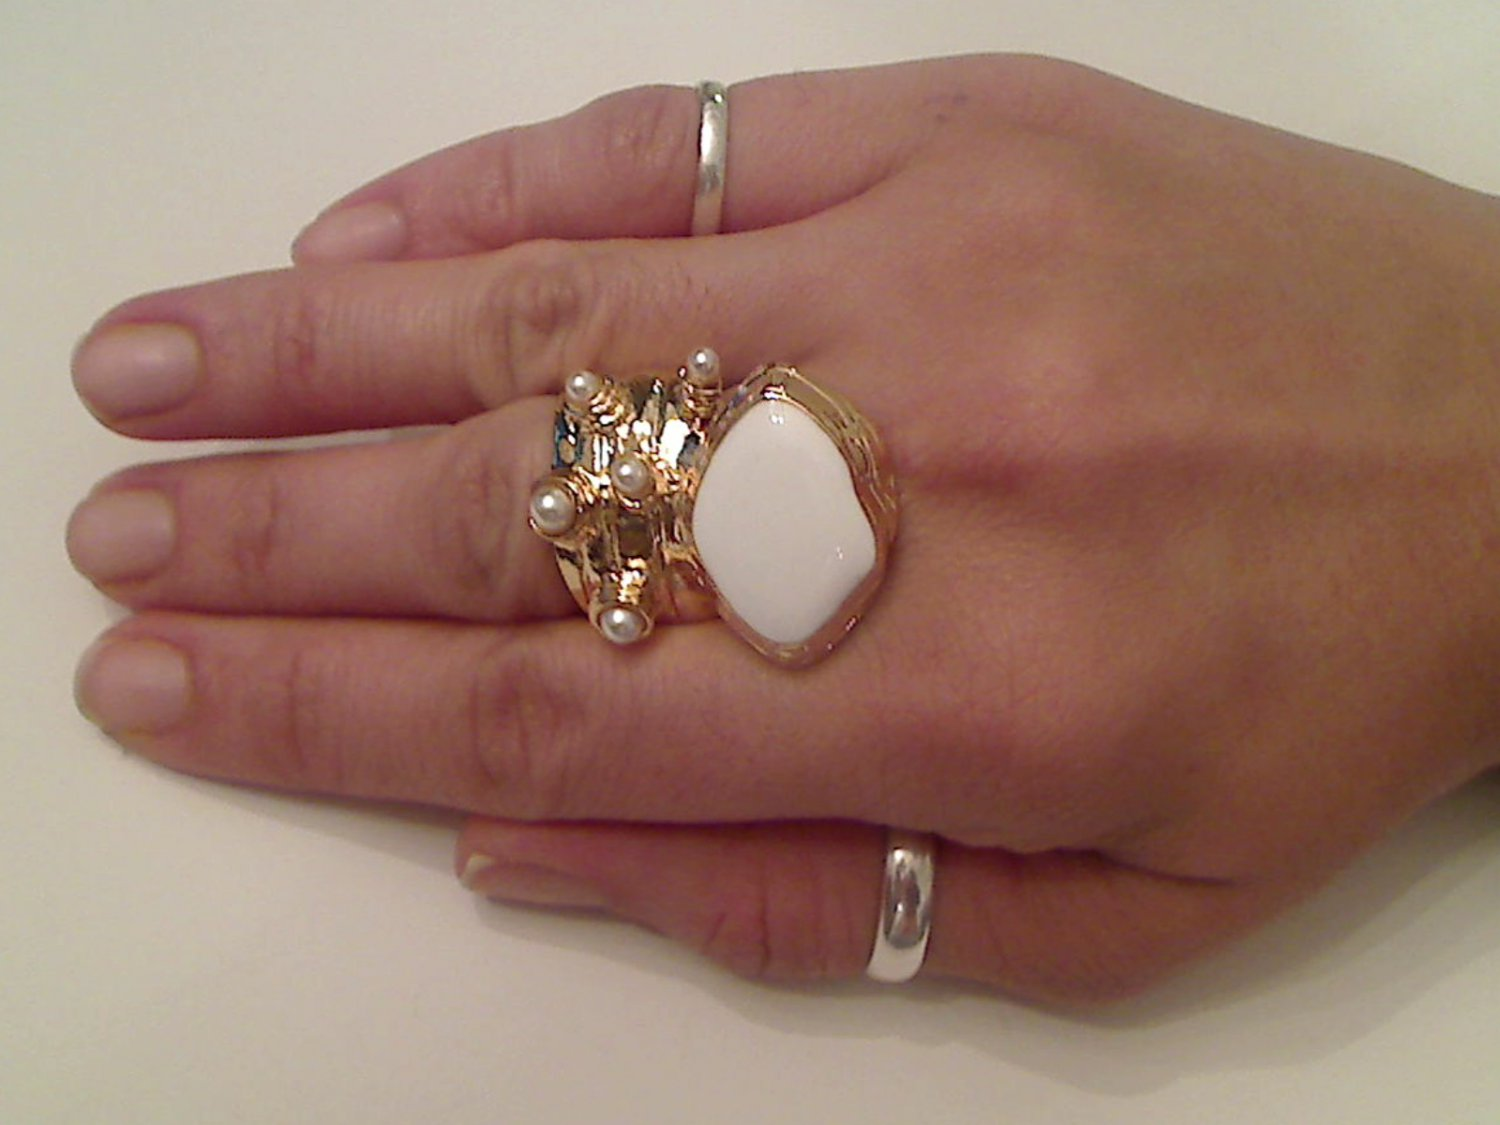 WHITE ARTY CHUNKY SPIKEY KNUCKLE RING IN GOLD